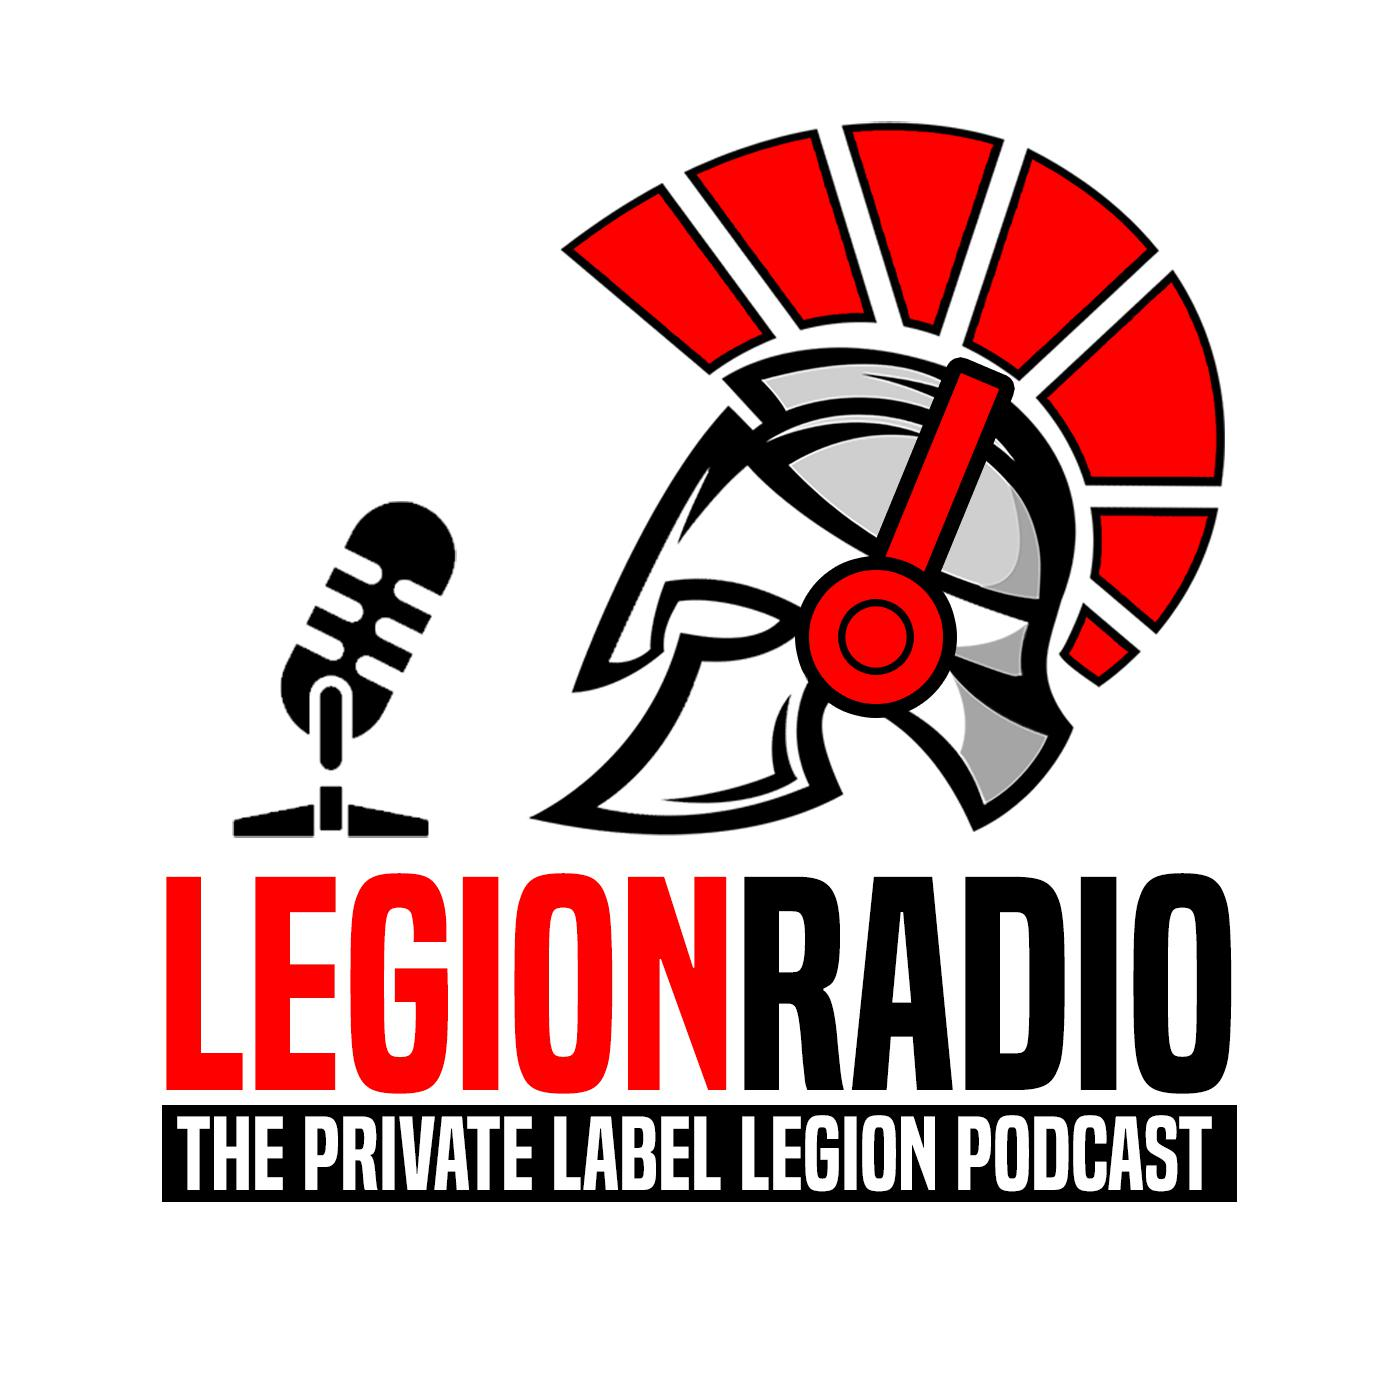 Legion Radio (podcast) - privatelabellegion | Listen Notes